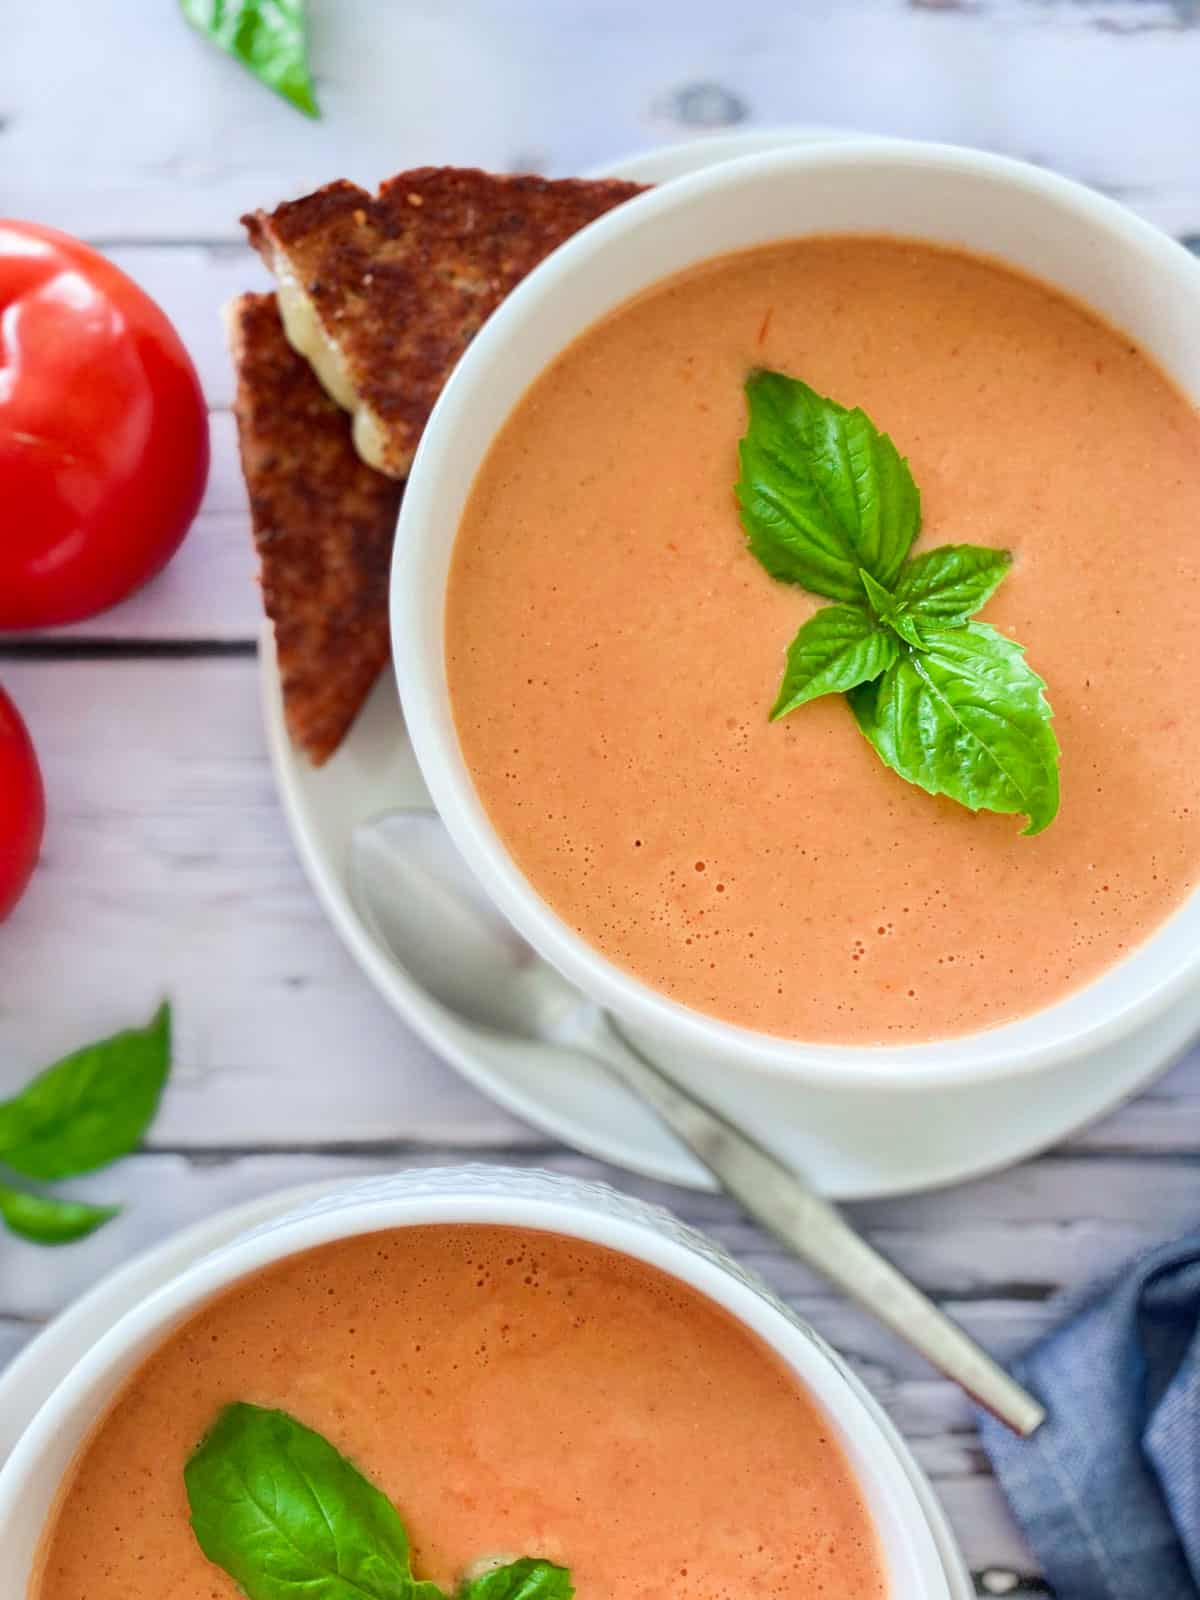 bowl of tomato soup with basil garnish on top